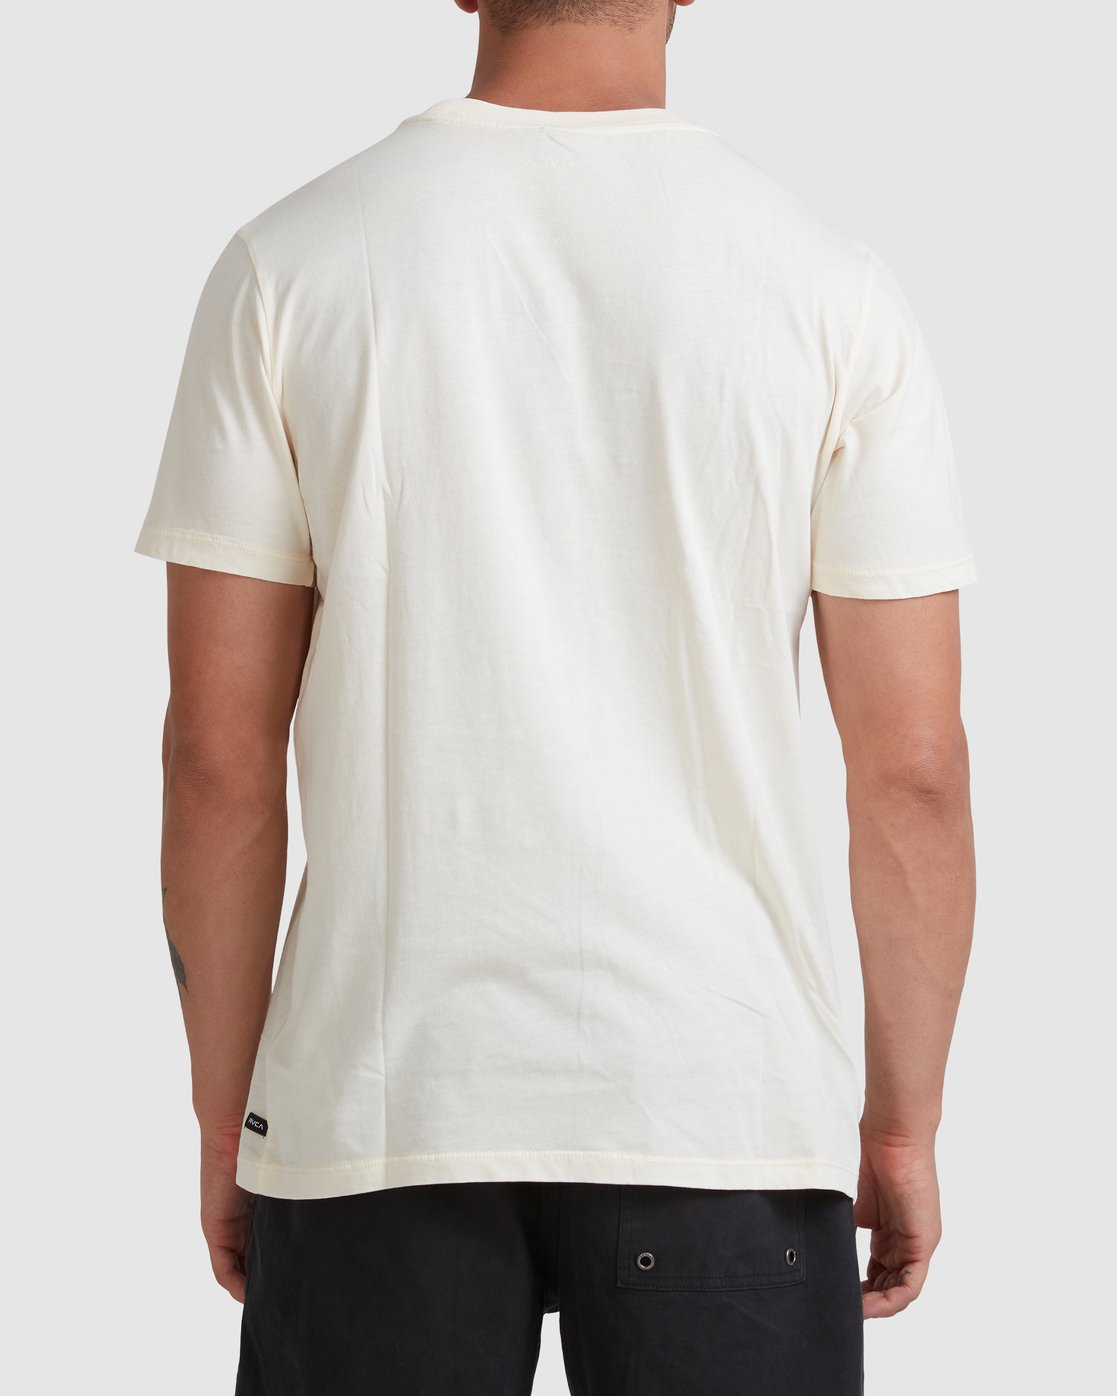 2 Rvca Washed Short Sleeve Tee White R105050 RVCA